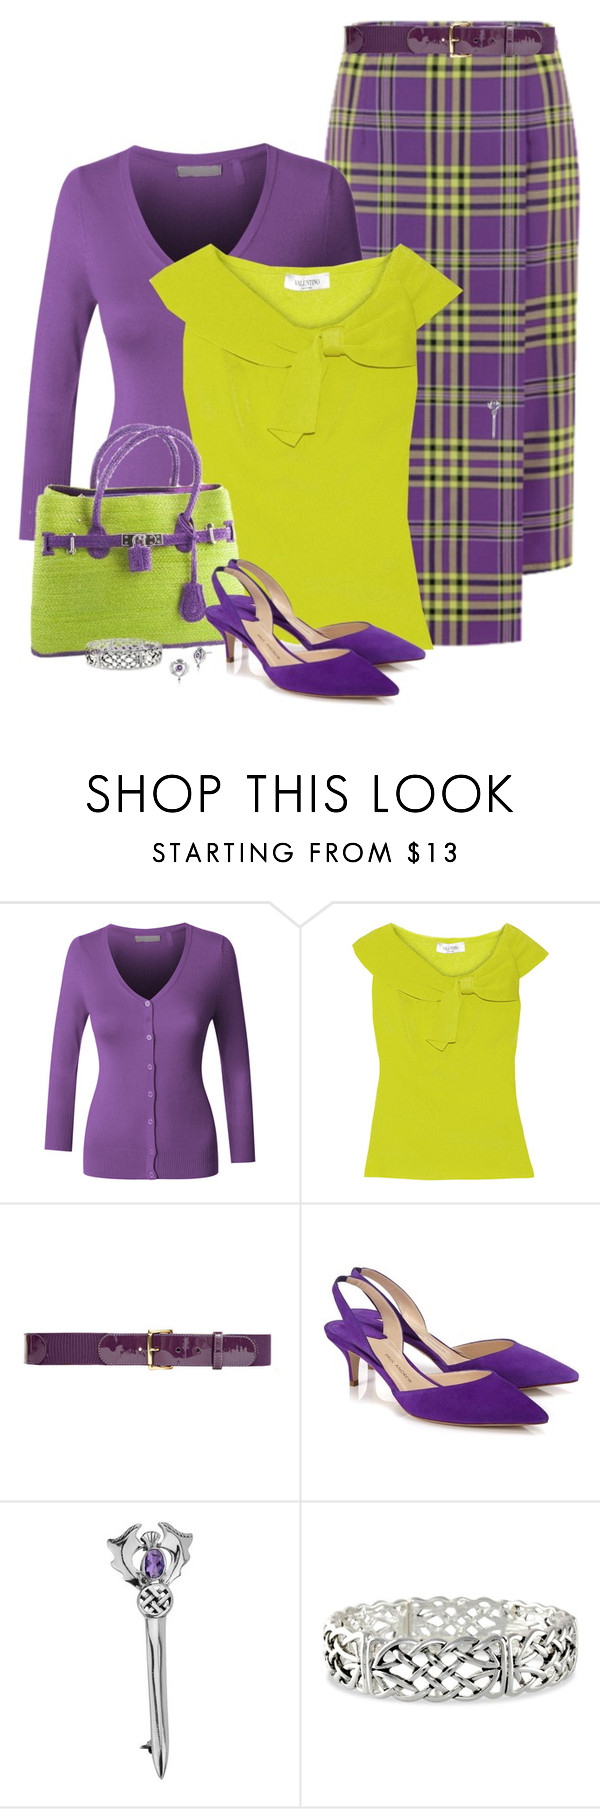 """Purple Tartan Kilt"" by dkelley-0711 ❤ liked on Polyvore featuring LE3NO, Valentino, Nina Ricci, Paul Andrew, valentino, NinaRicci and GirlWithPearl"